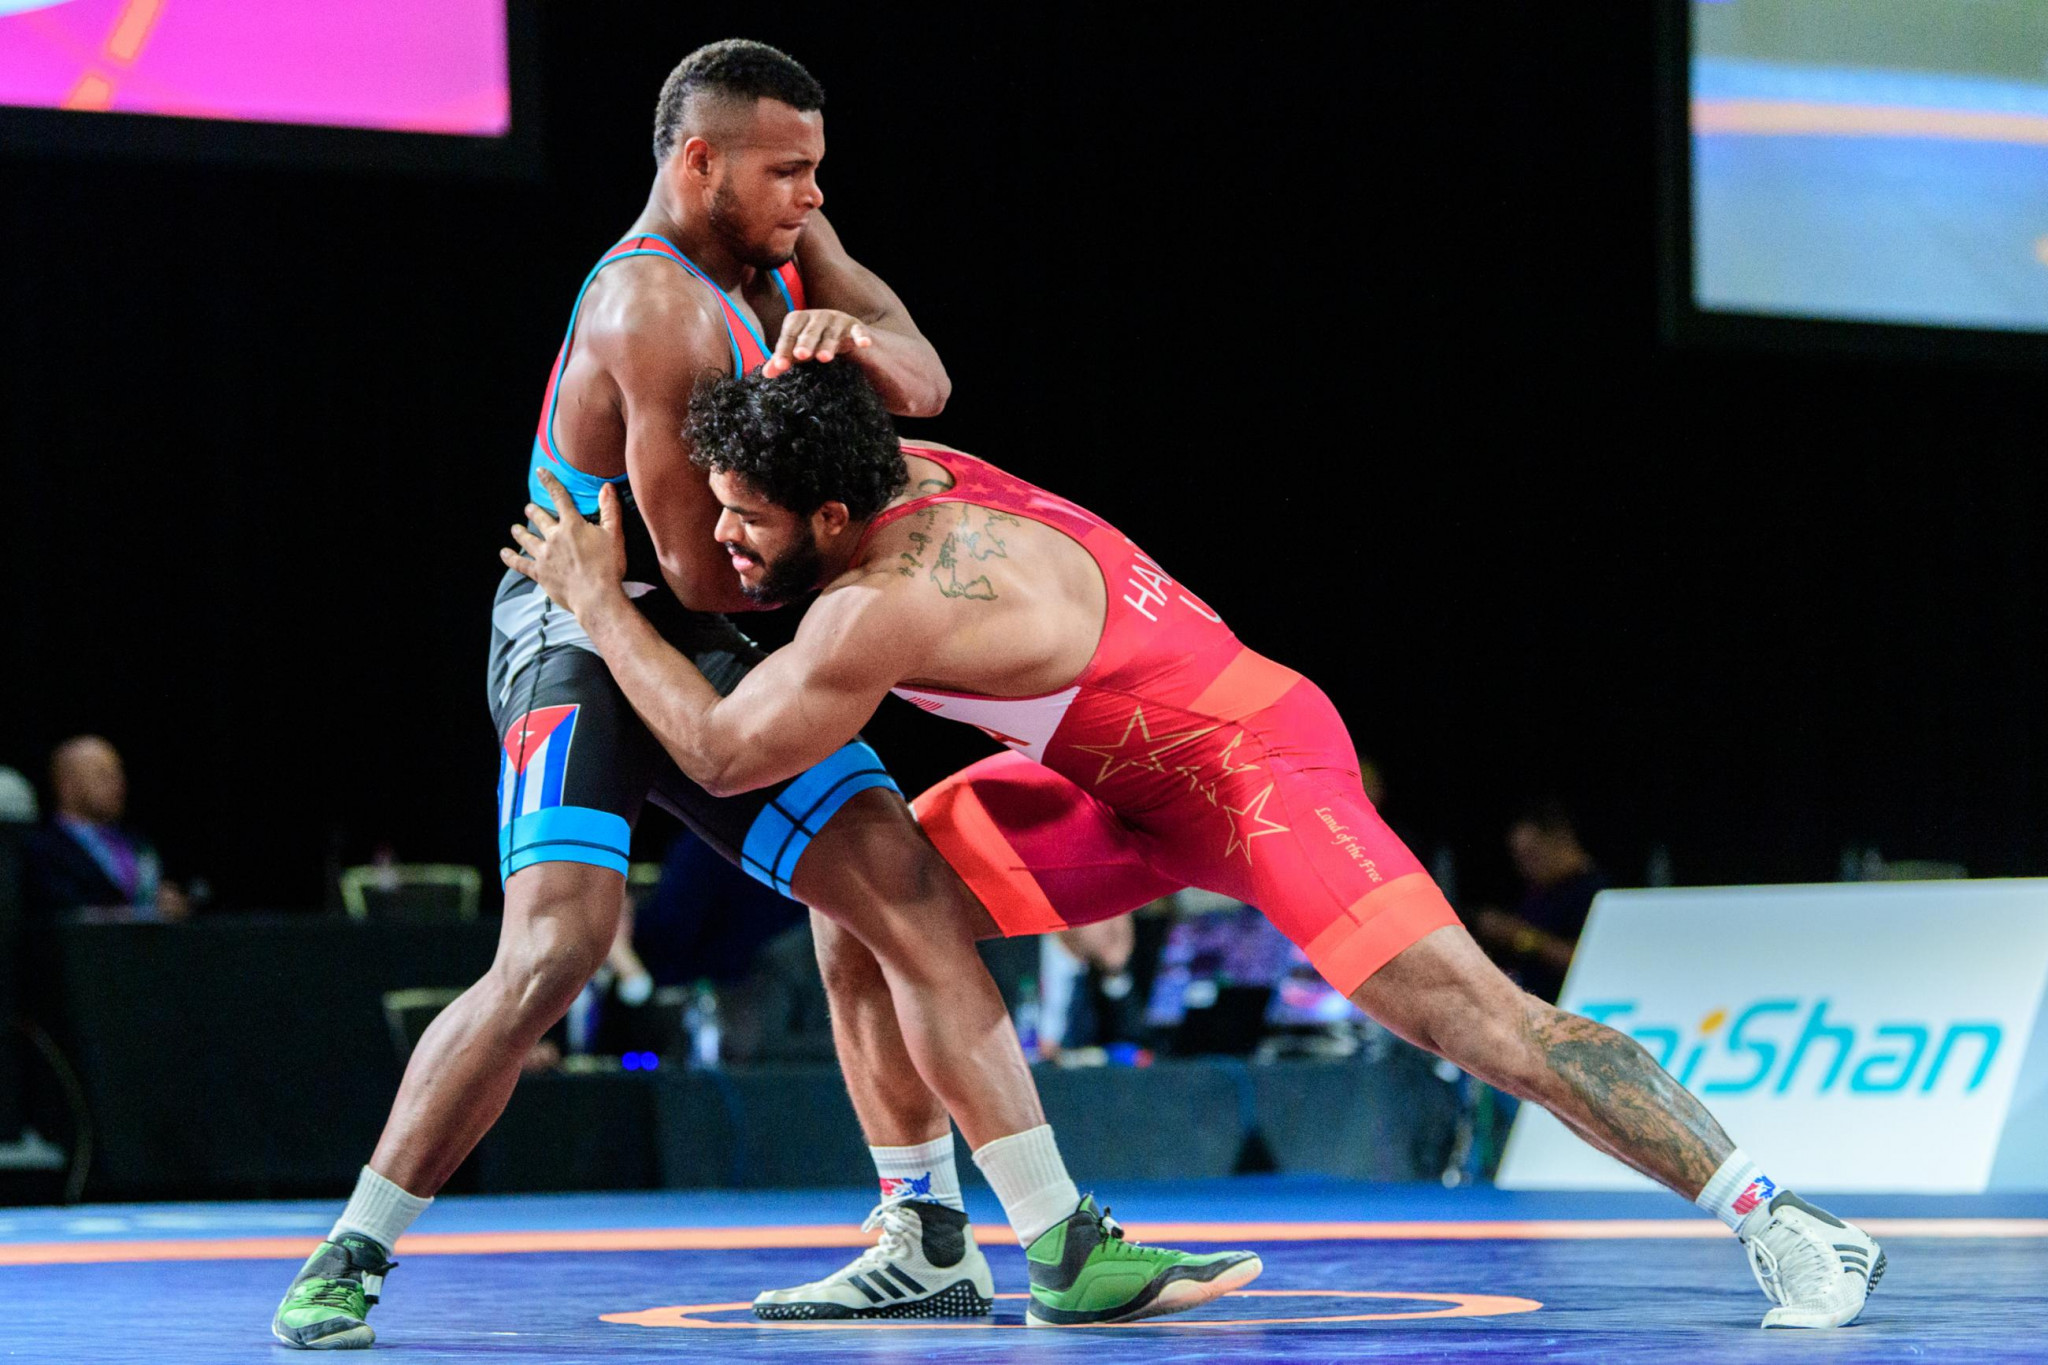 United States win three golds on day one of Pan American Wrestling Championships in Ottawa